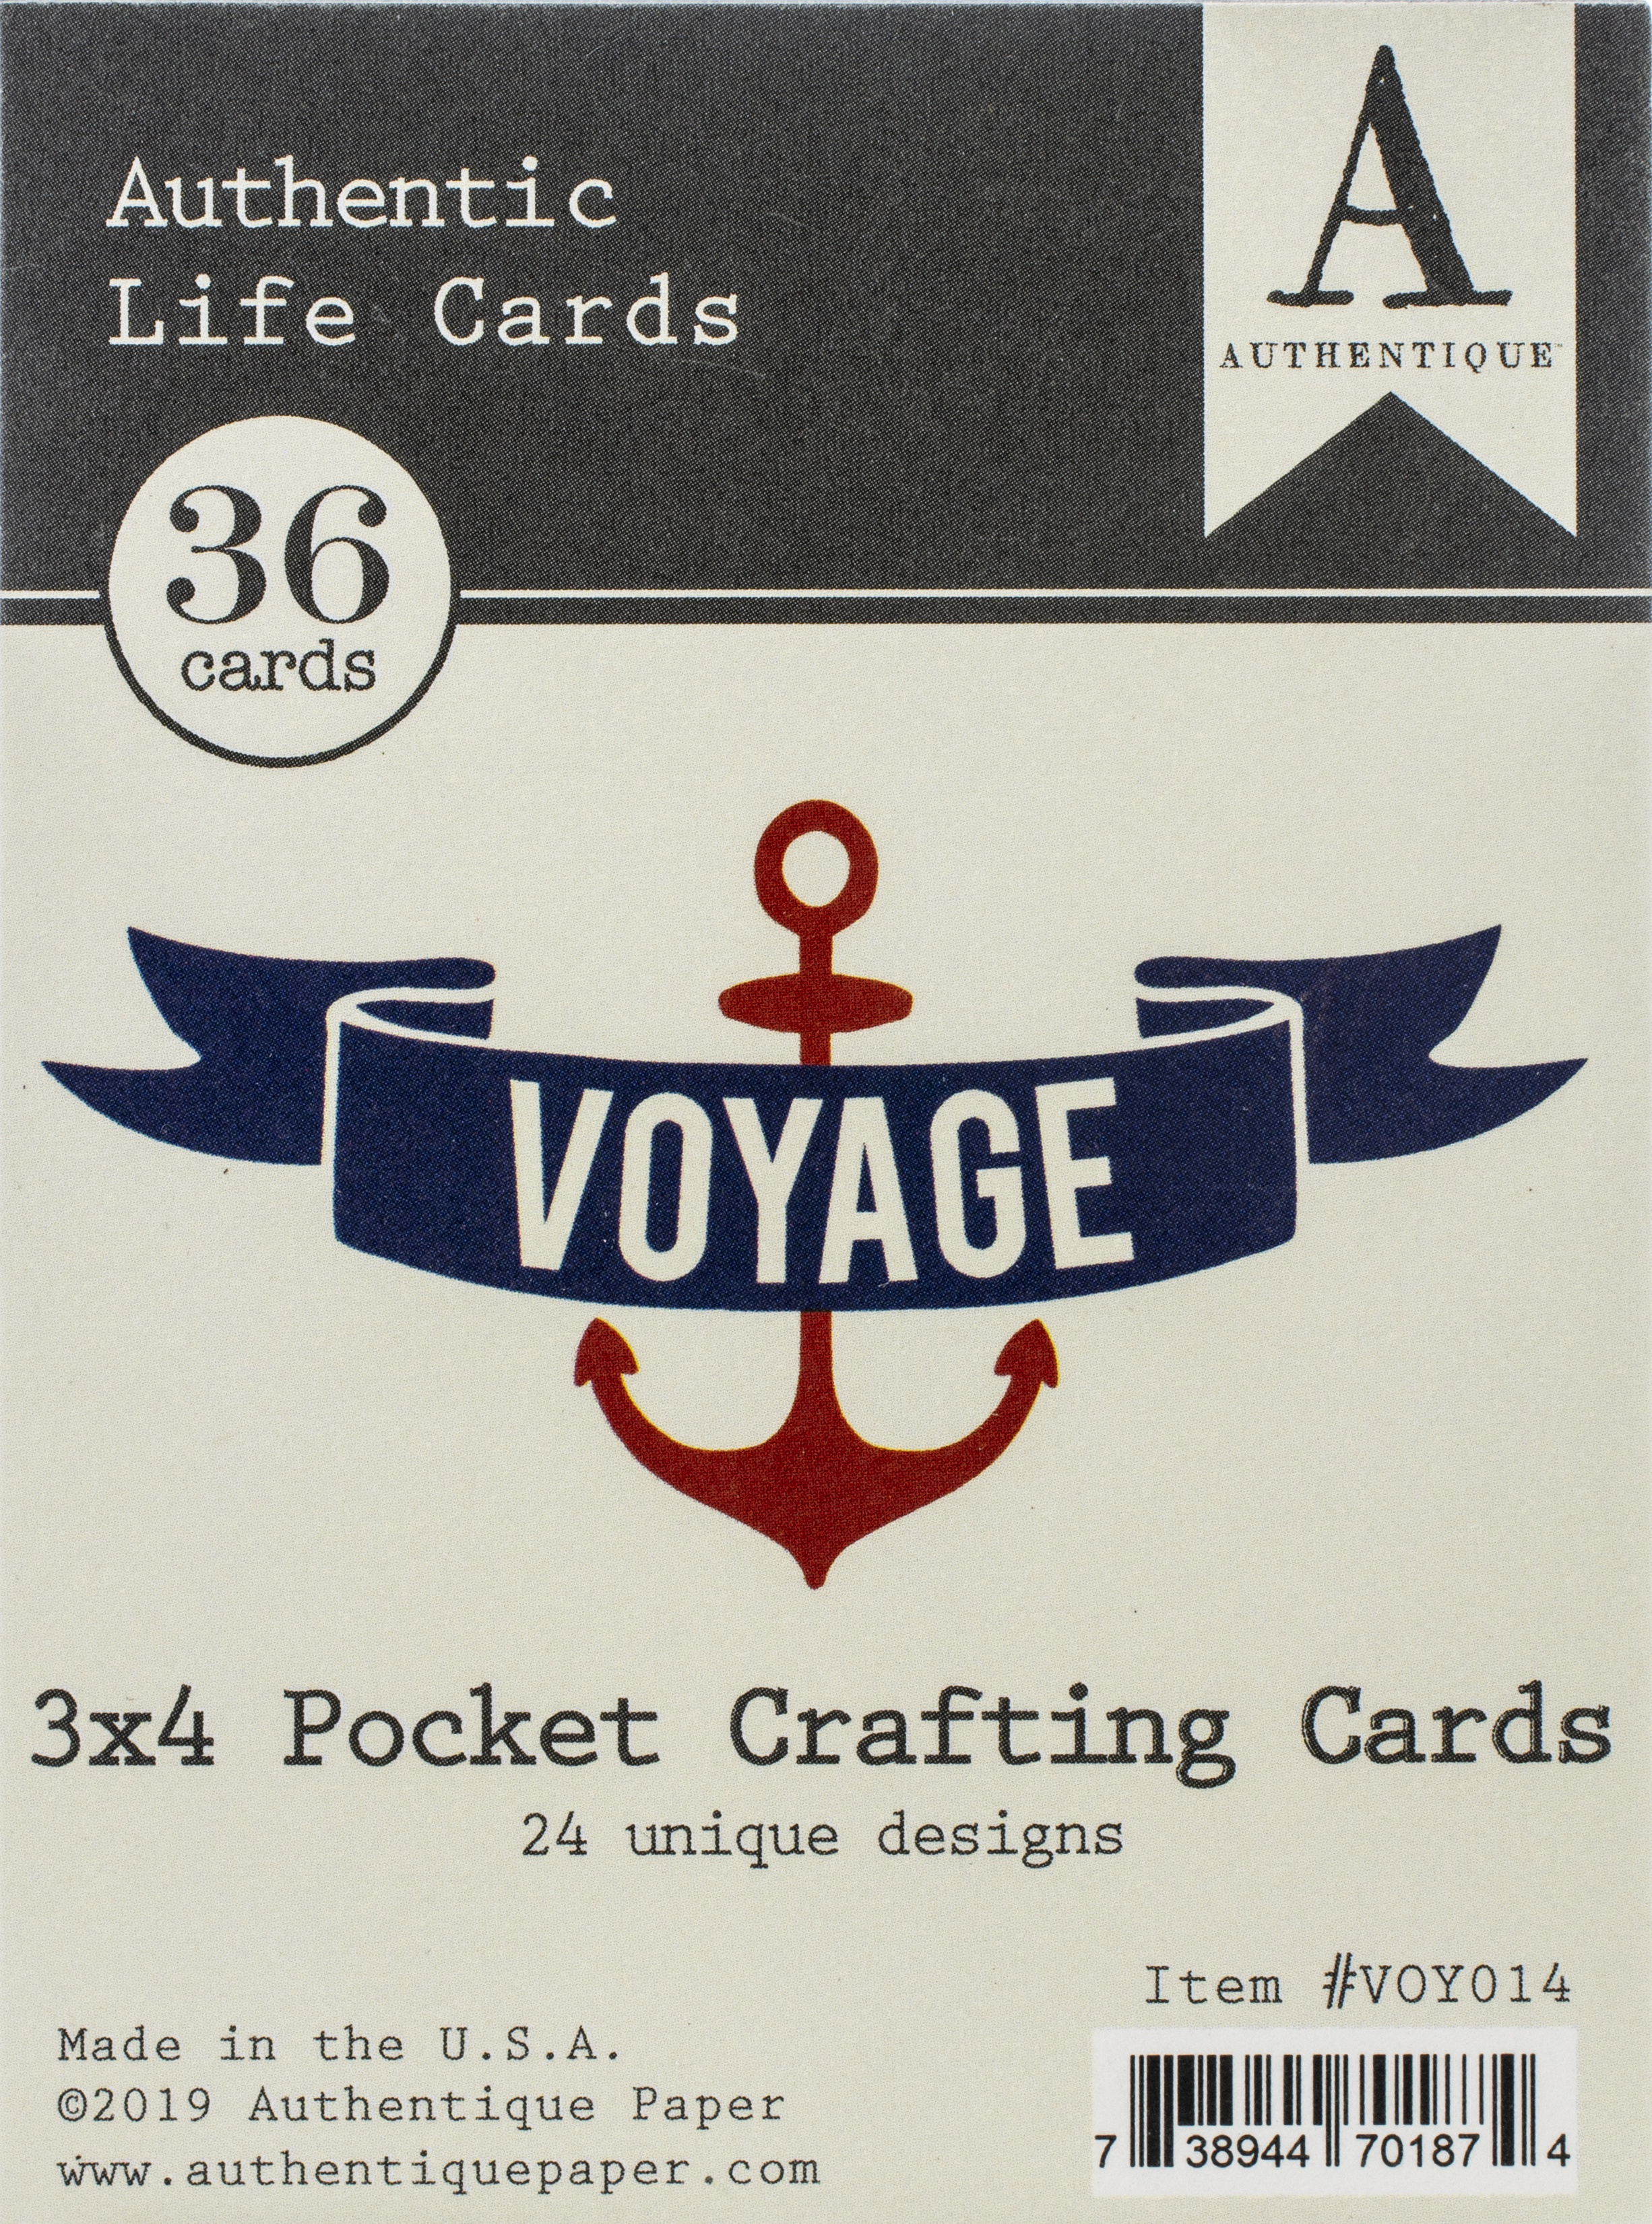 Voyage Life Cards 36/Pkg-3X4 Pocket Crafting & Journaling Cards